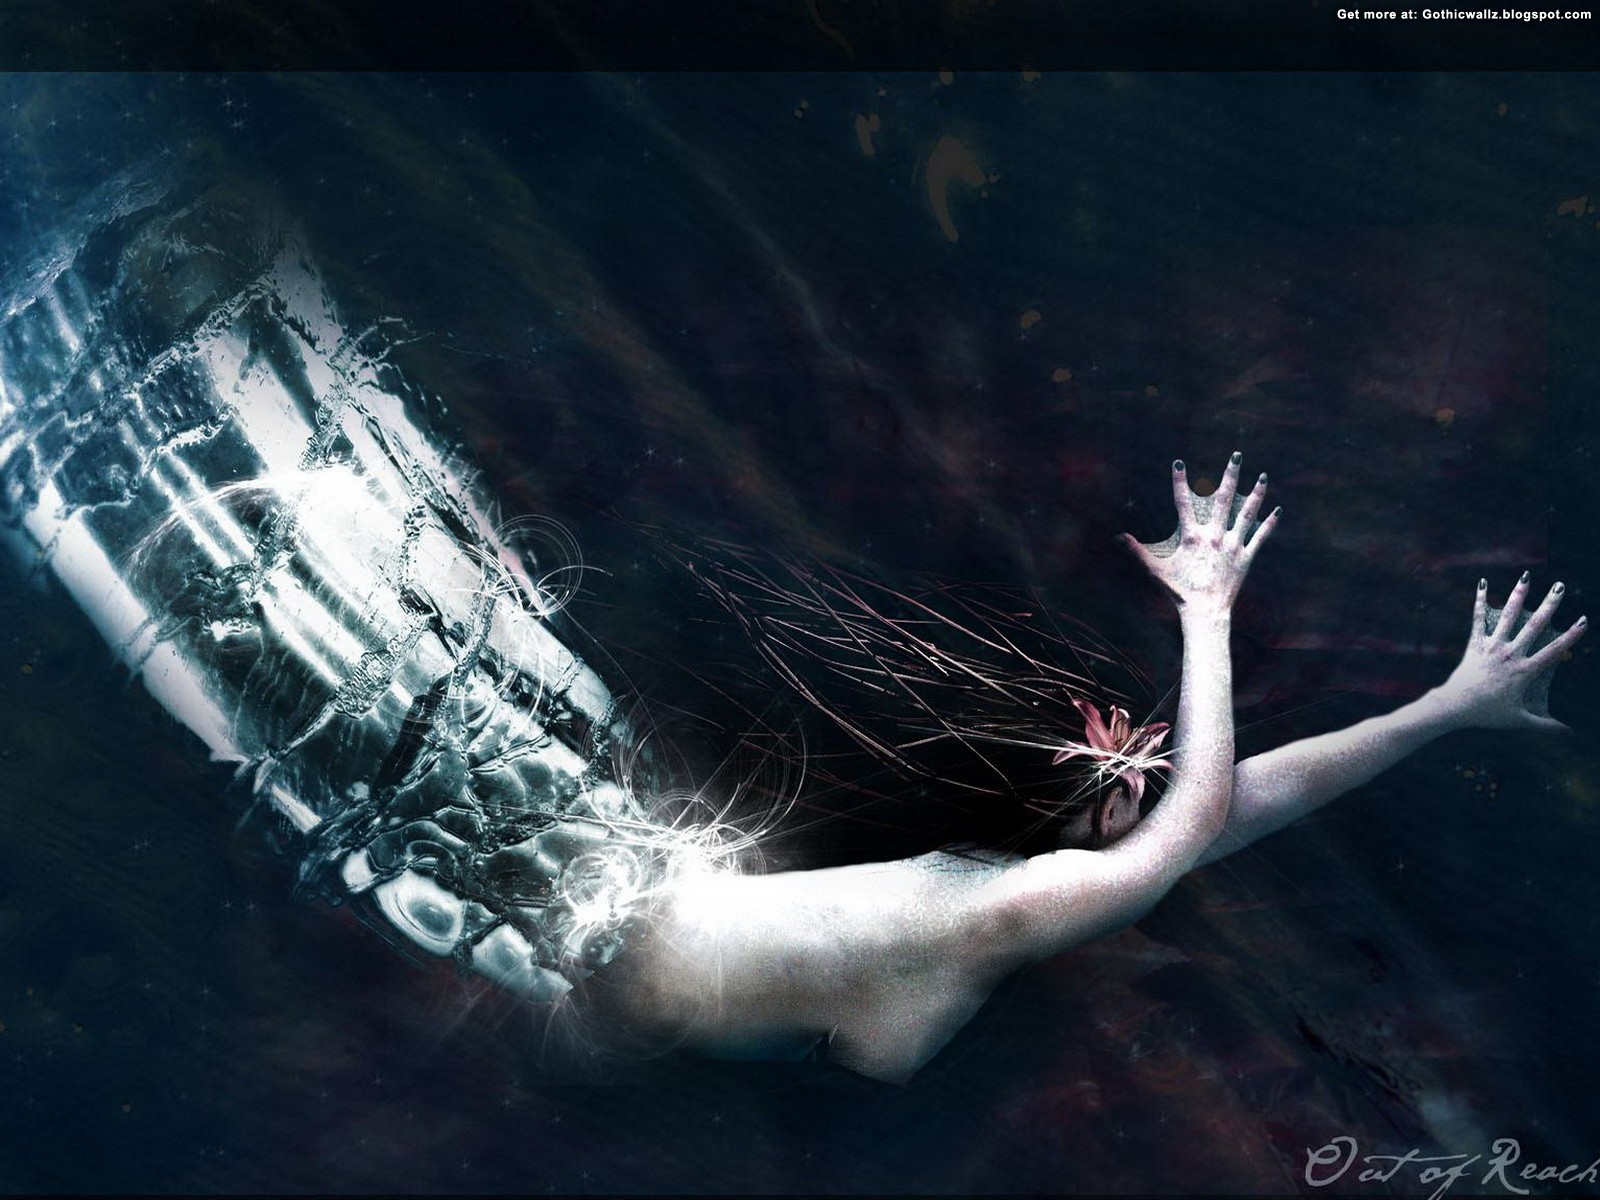 Out of Reach   Gothic Wallpaper Download